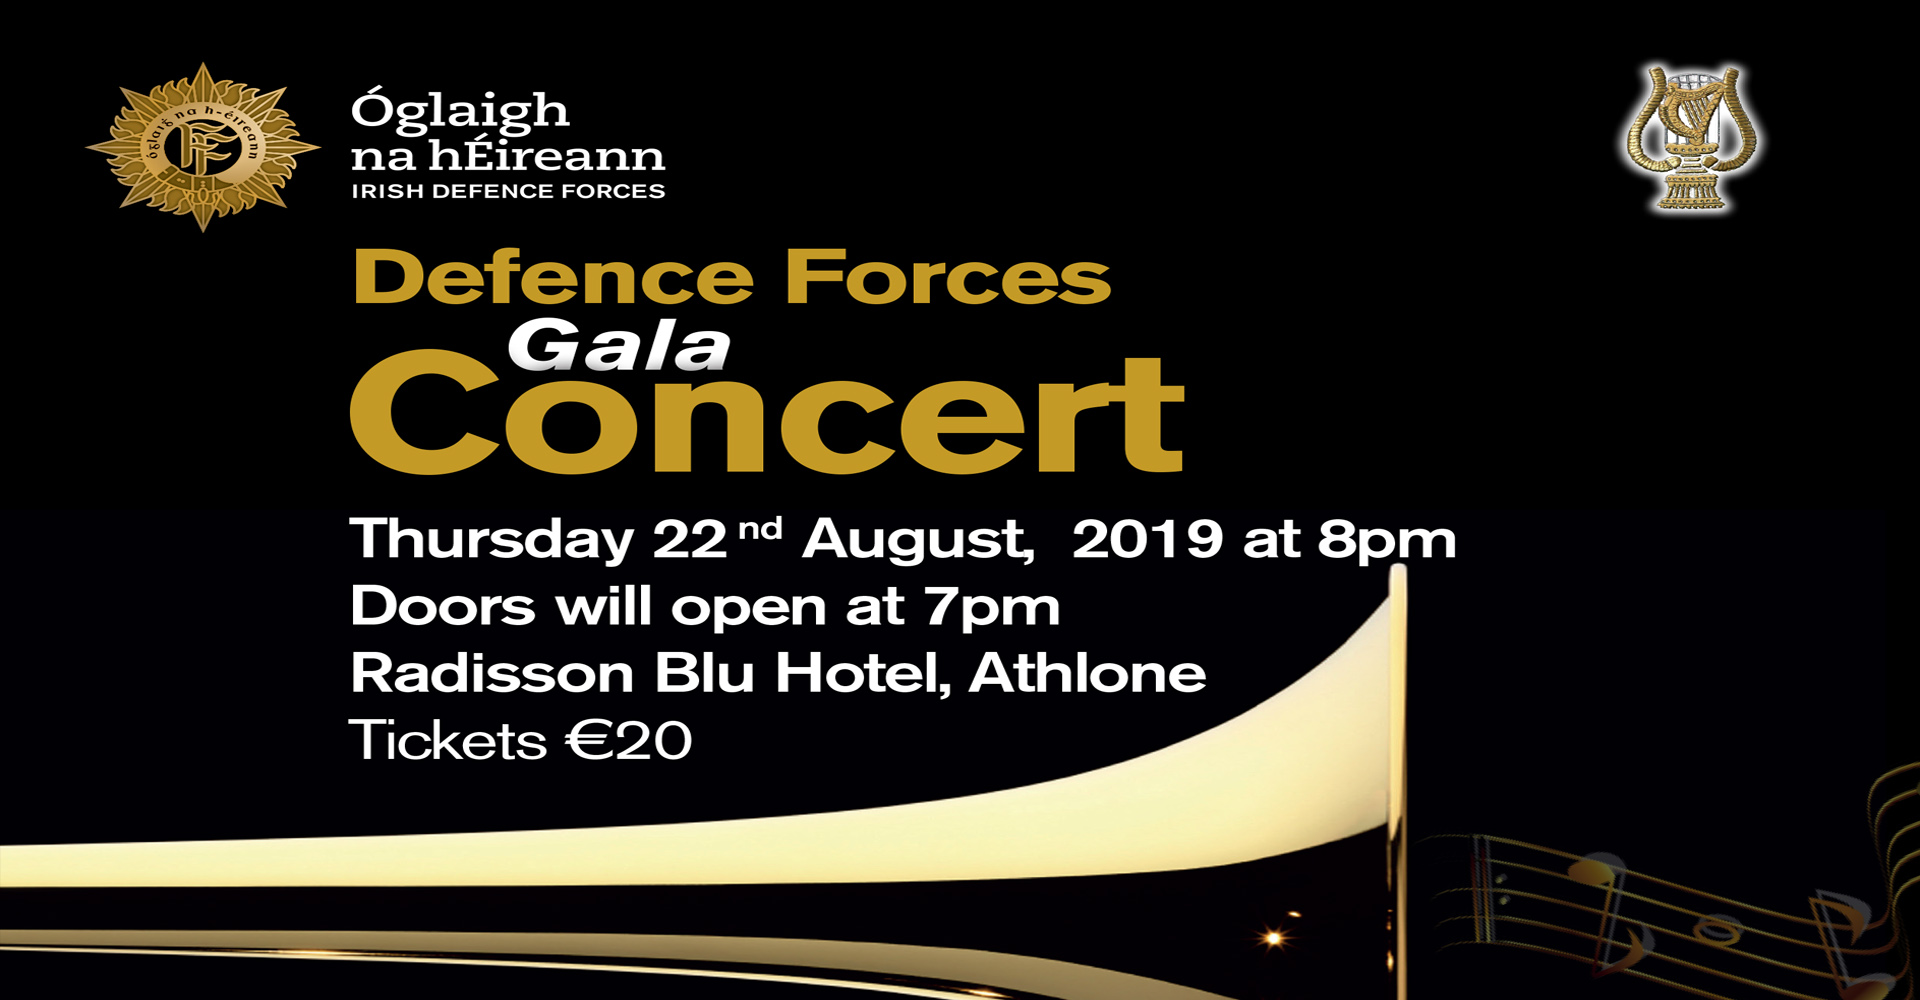 Defence Forces Gala Concert